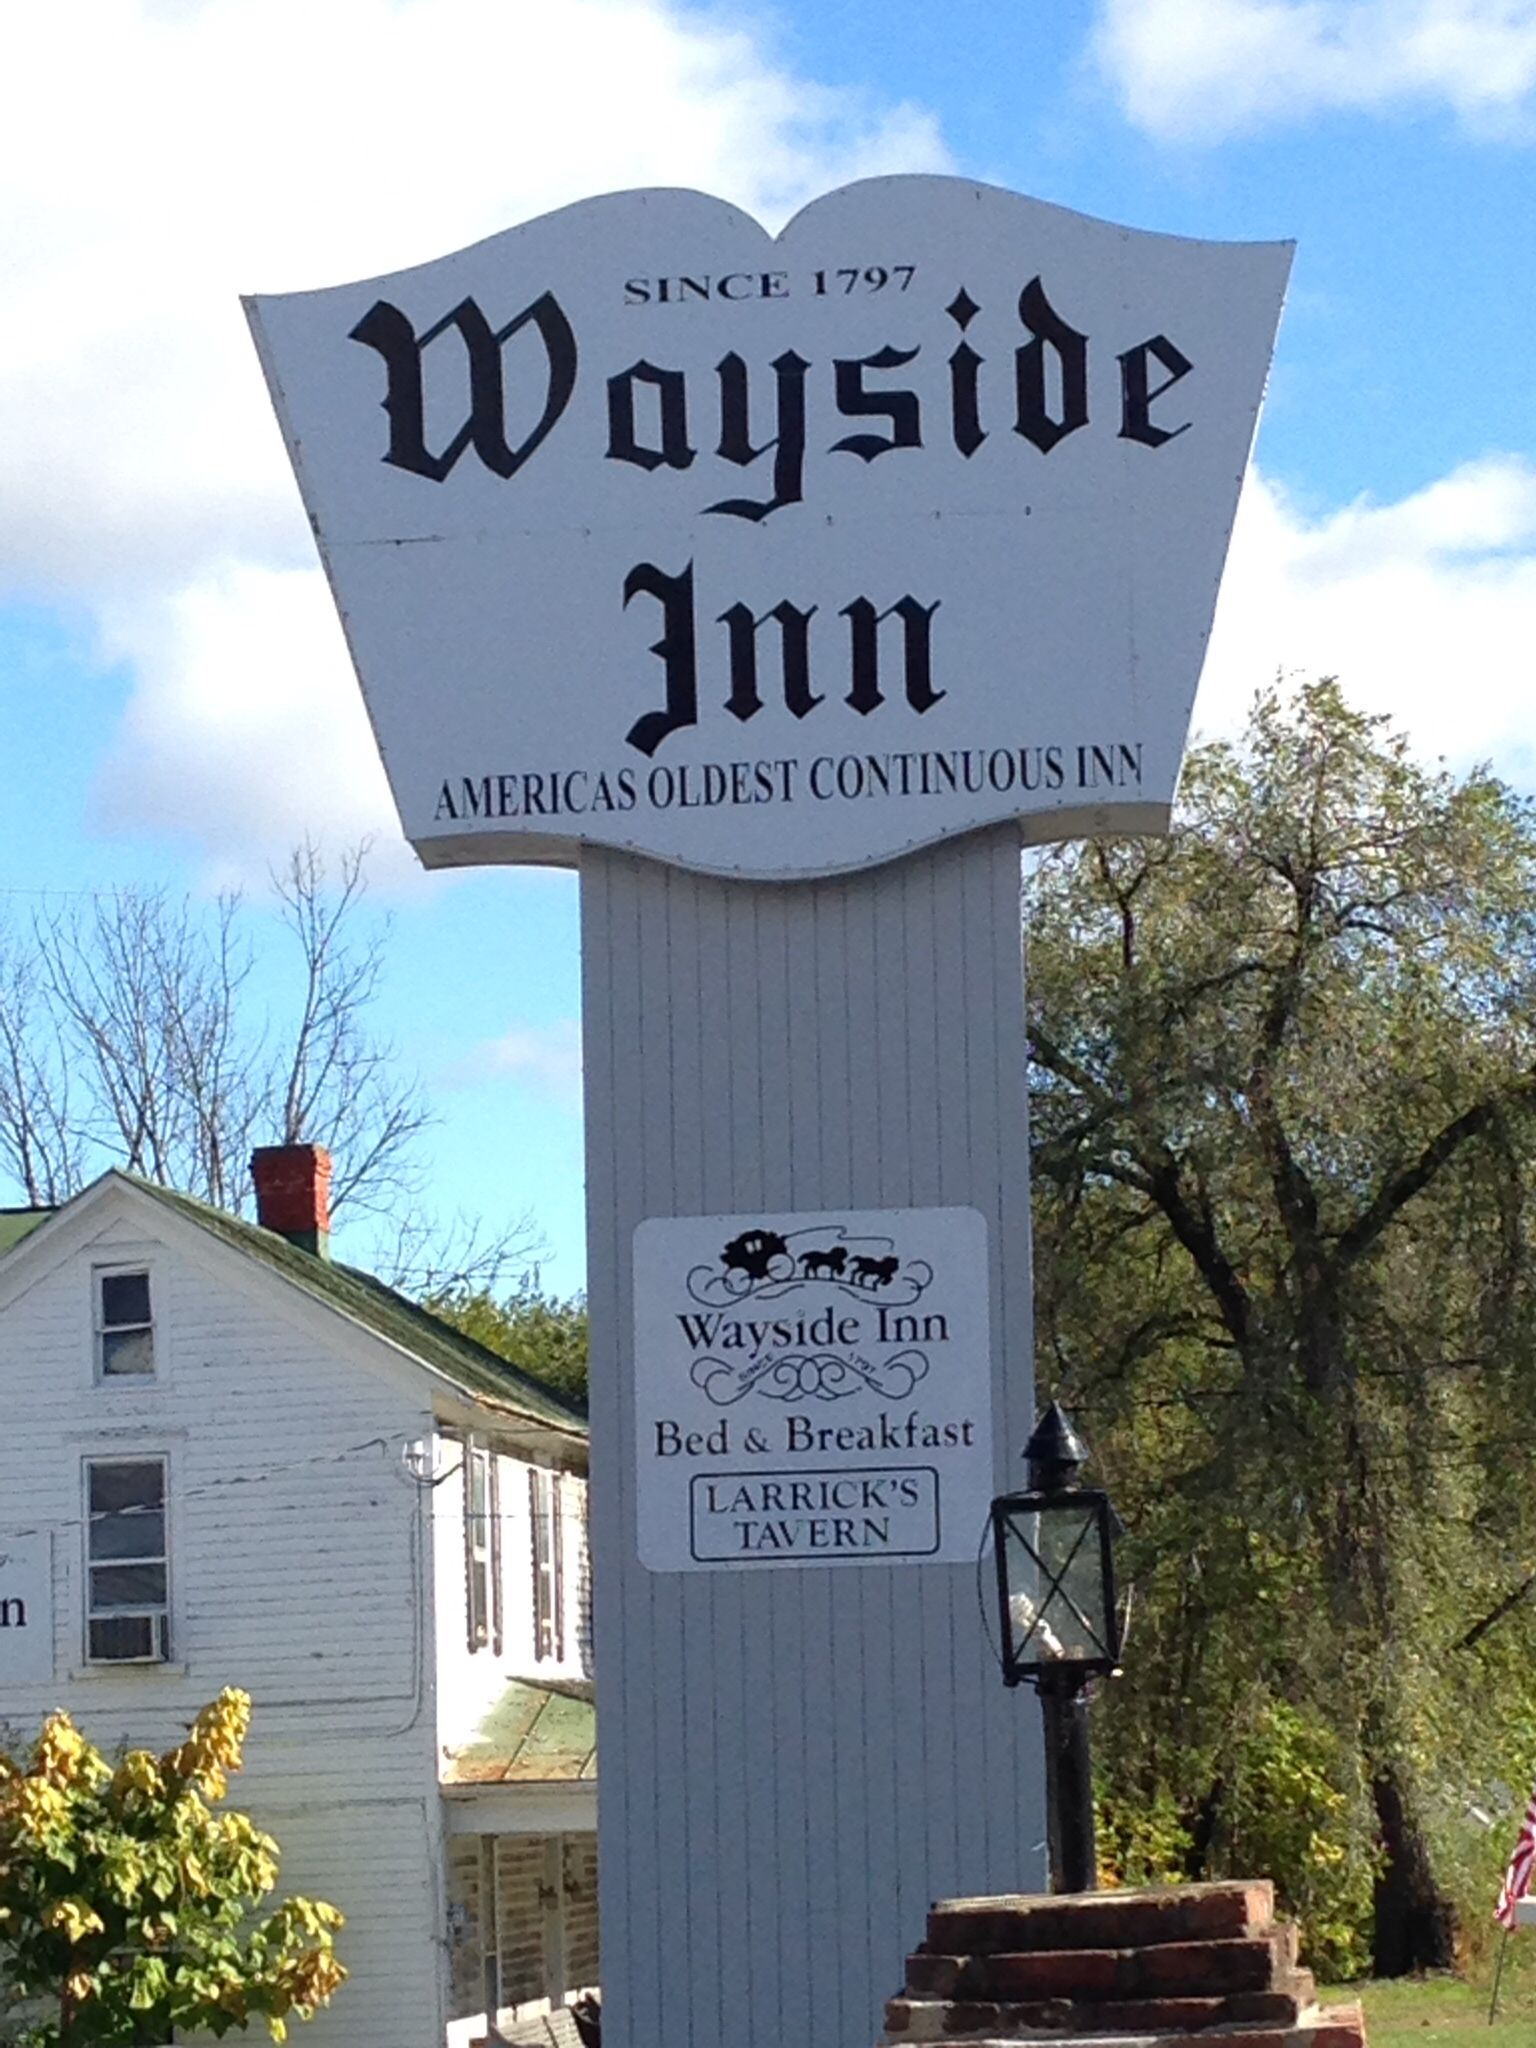 Wayside Inn (With images) Wayside inn, West virginia